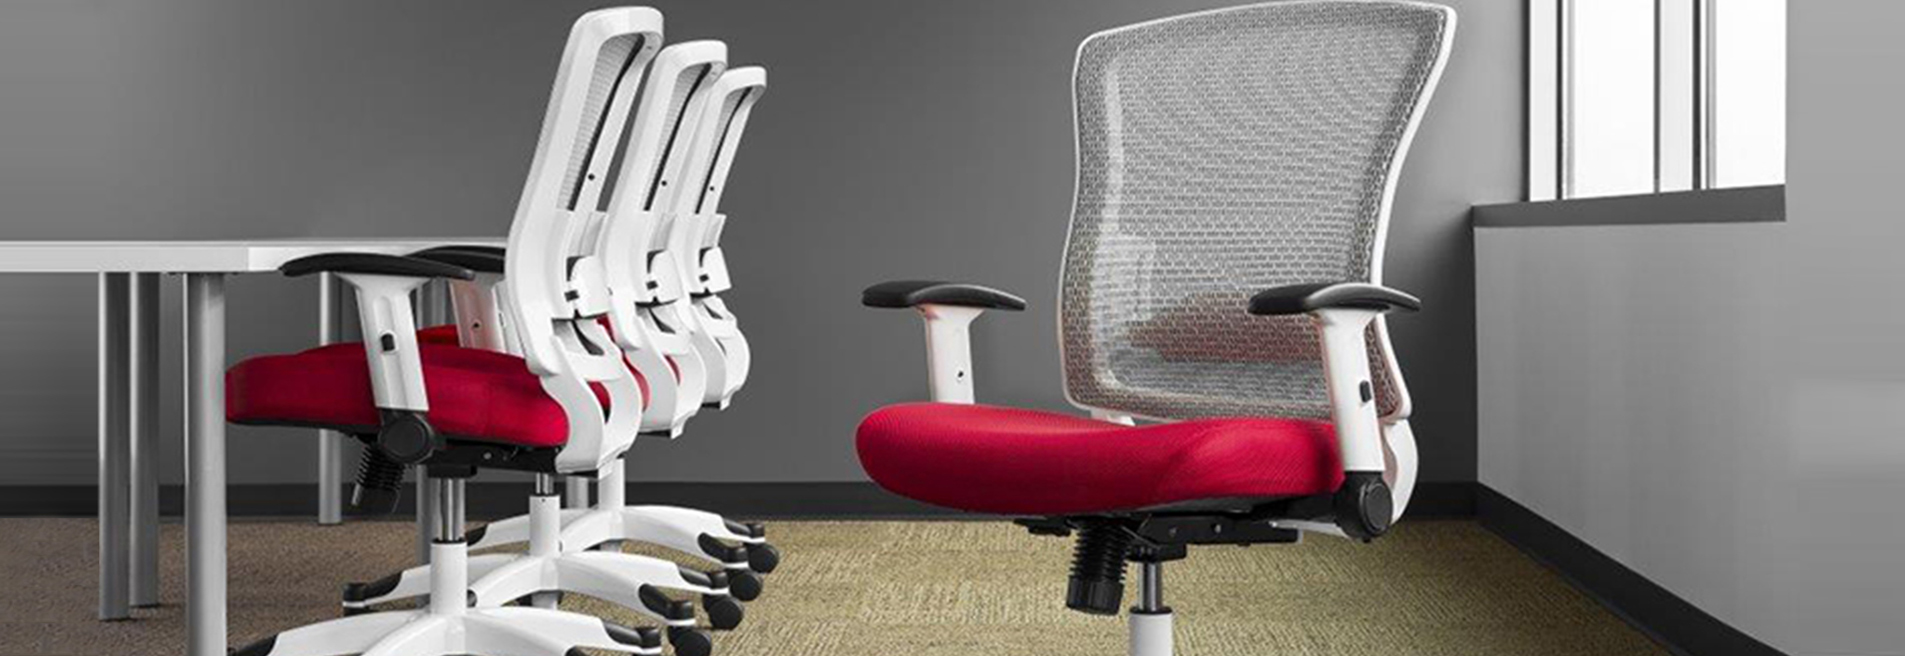 Terrific Chairs For Office Top Sellers Download Free Architecture Designs Scobabritishbridgeorg